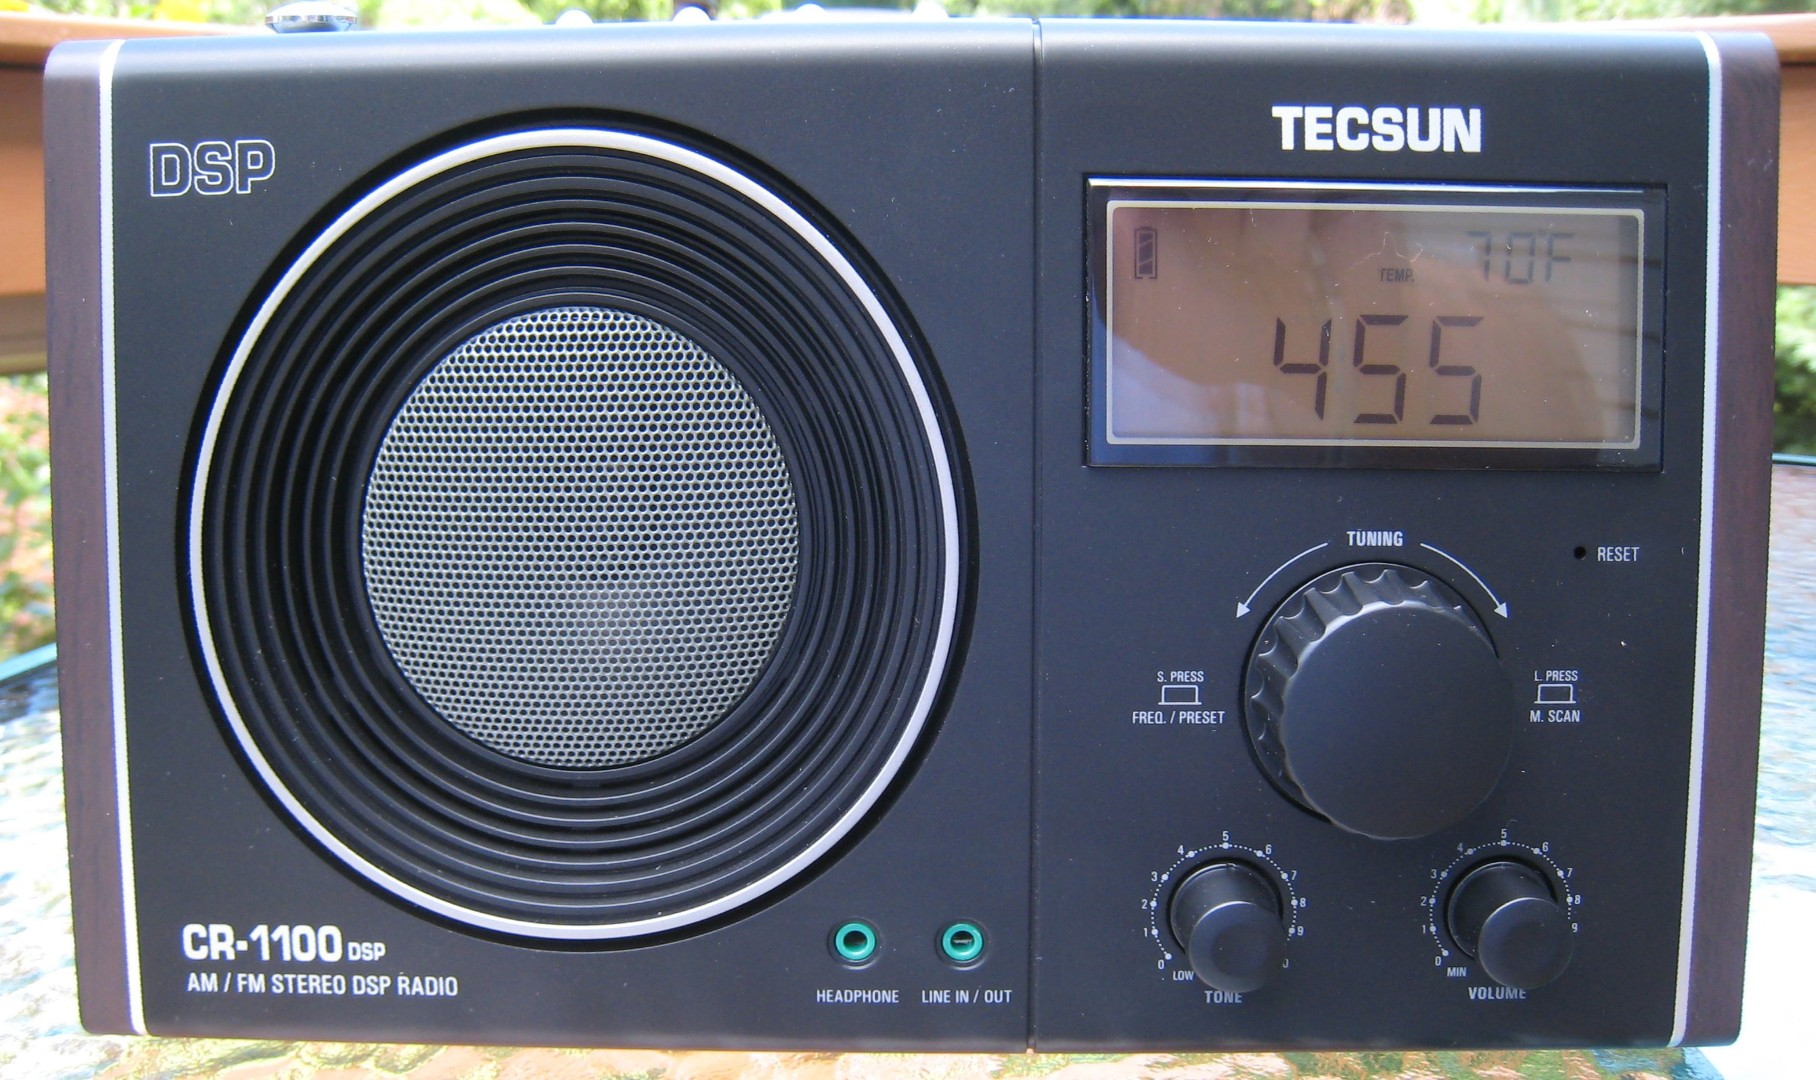 Two Inexpensive AM/FM Portables: Sony ICF-38, Tecsun CR-1100